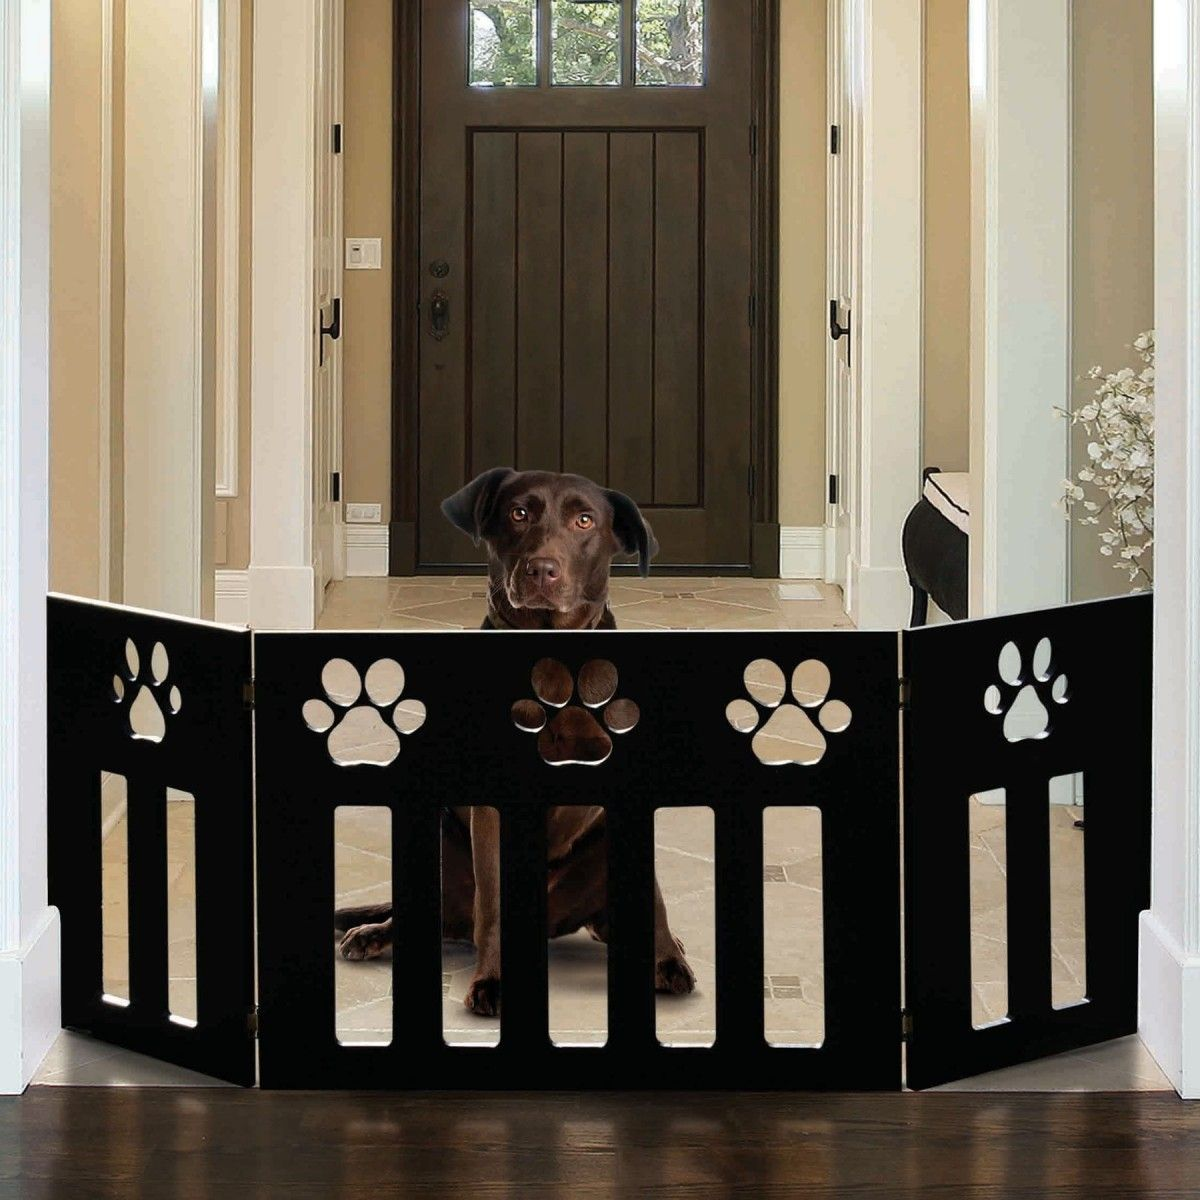 Etna pet dog gate free standing 48 in wide 19 in tall